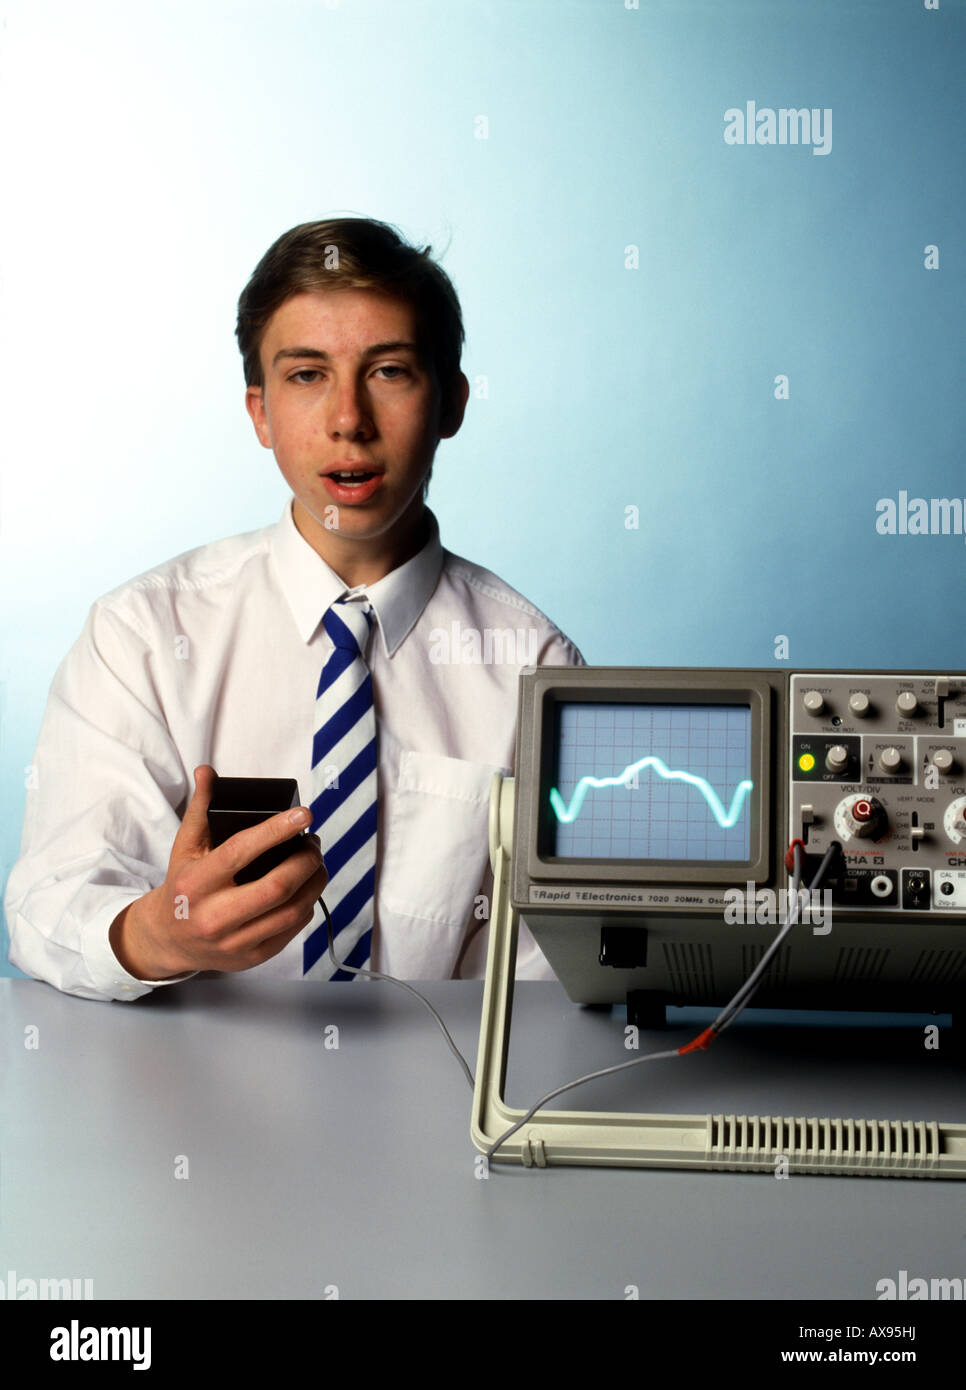 Cathode Ray Oscilloscope Stock Photos Cro A School Boy Sings Note Into Microphone And Its Waveform Is Shown On